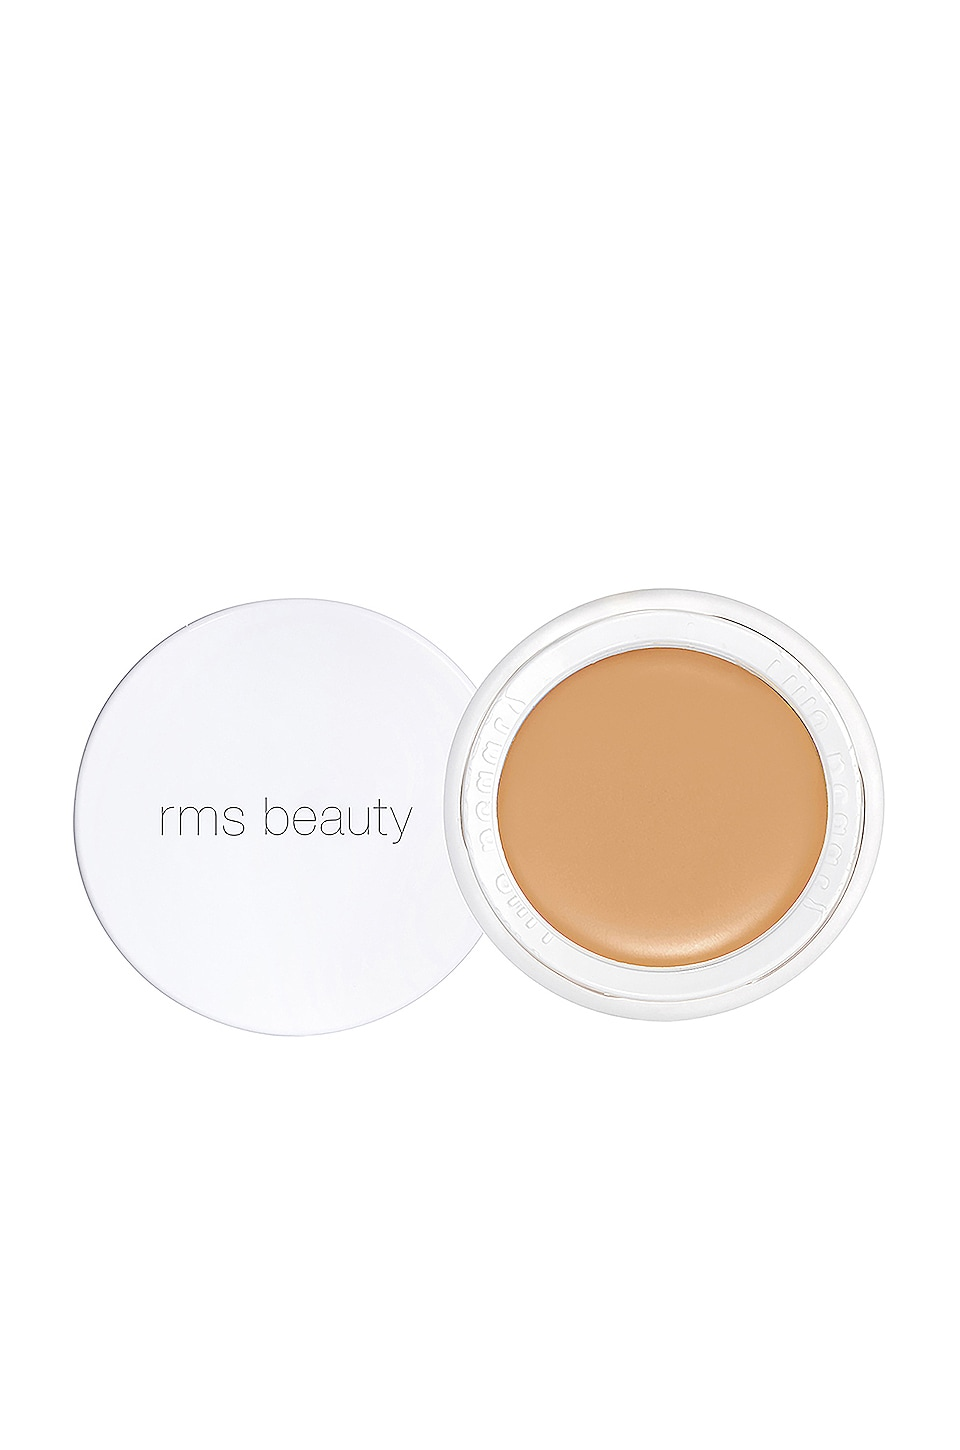 RMS Beauty Uncover Up in 33.5